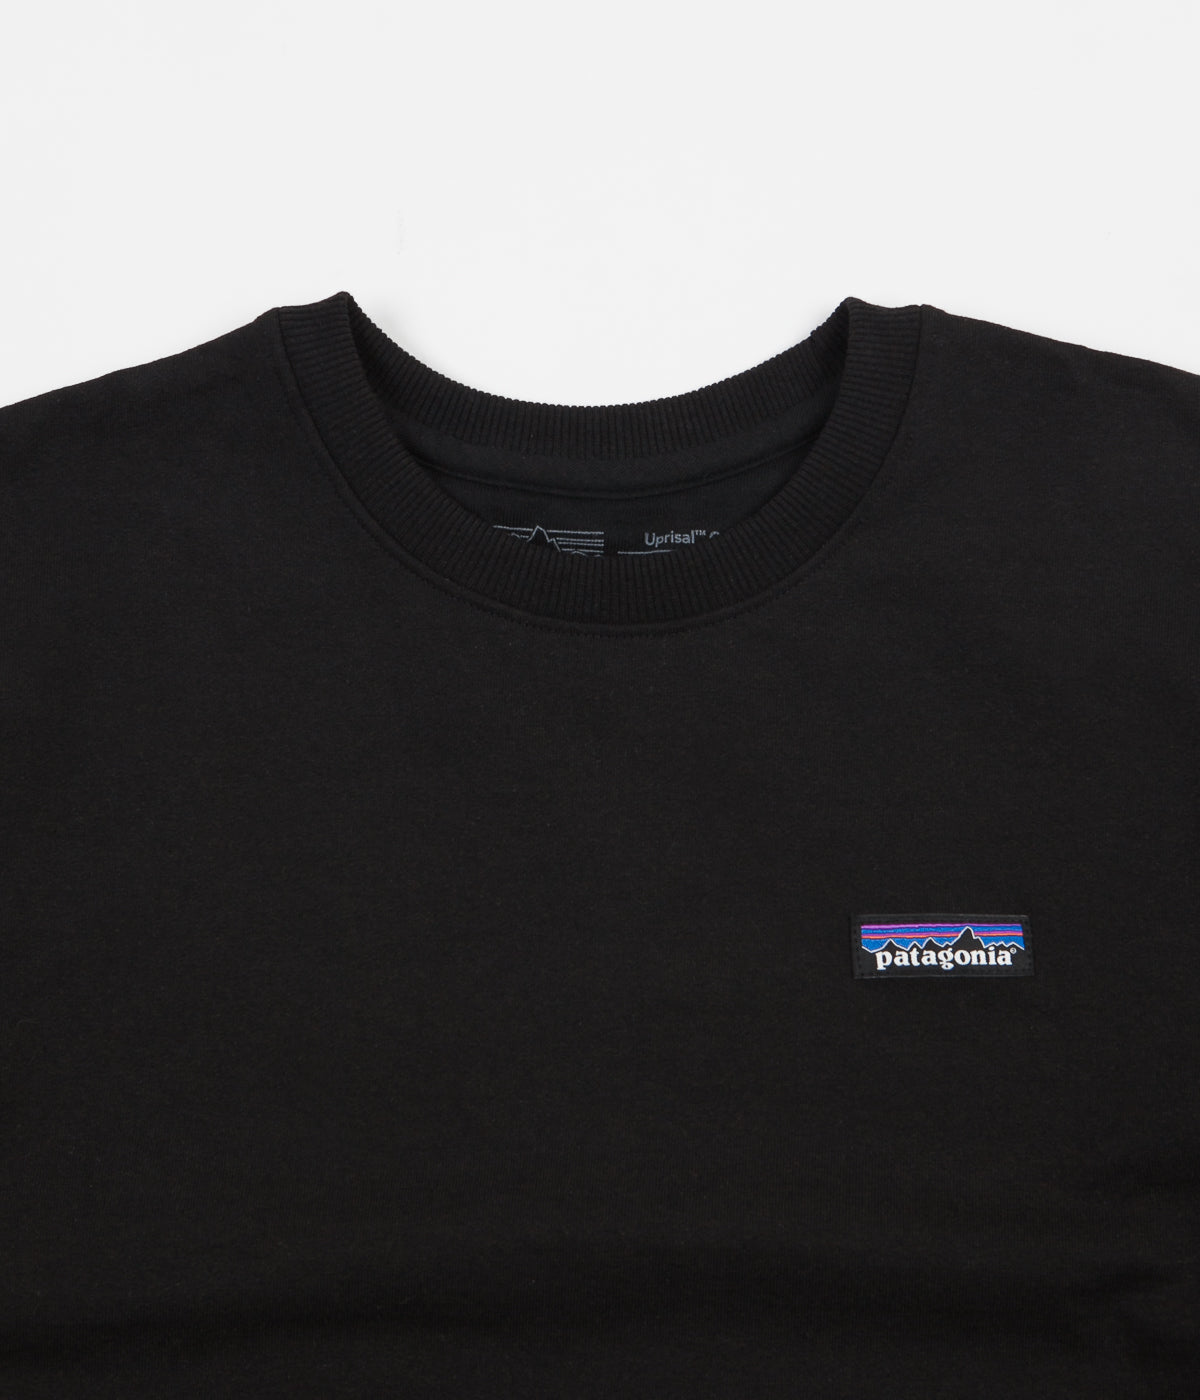 Patagonia P-6 Label Uprisal Crewneck Sweatshirt - Black